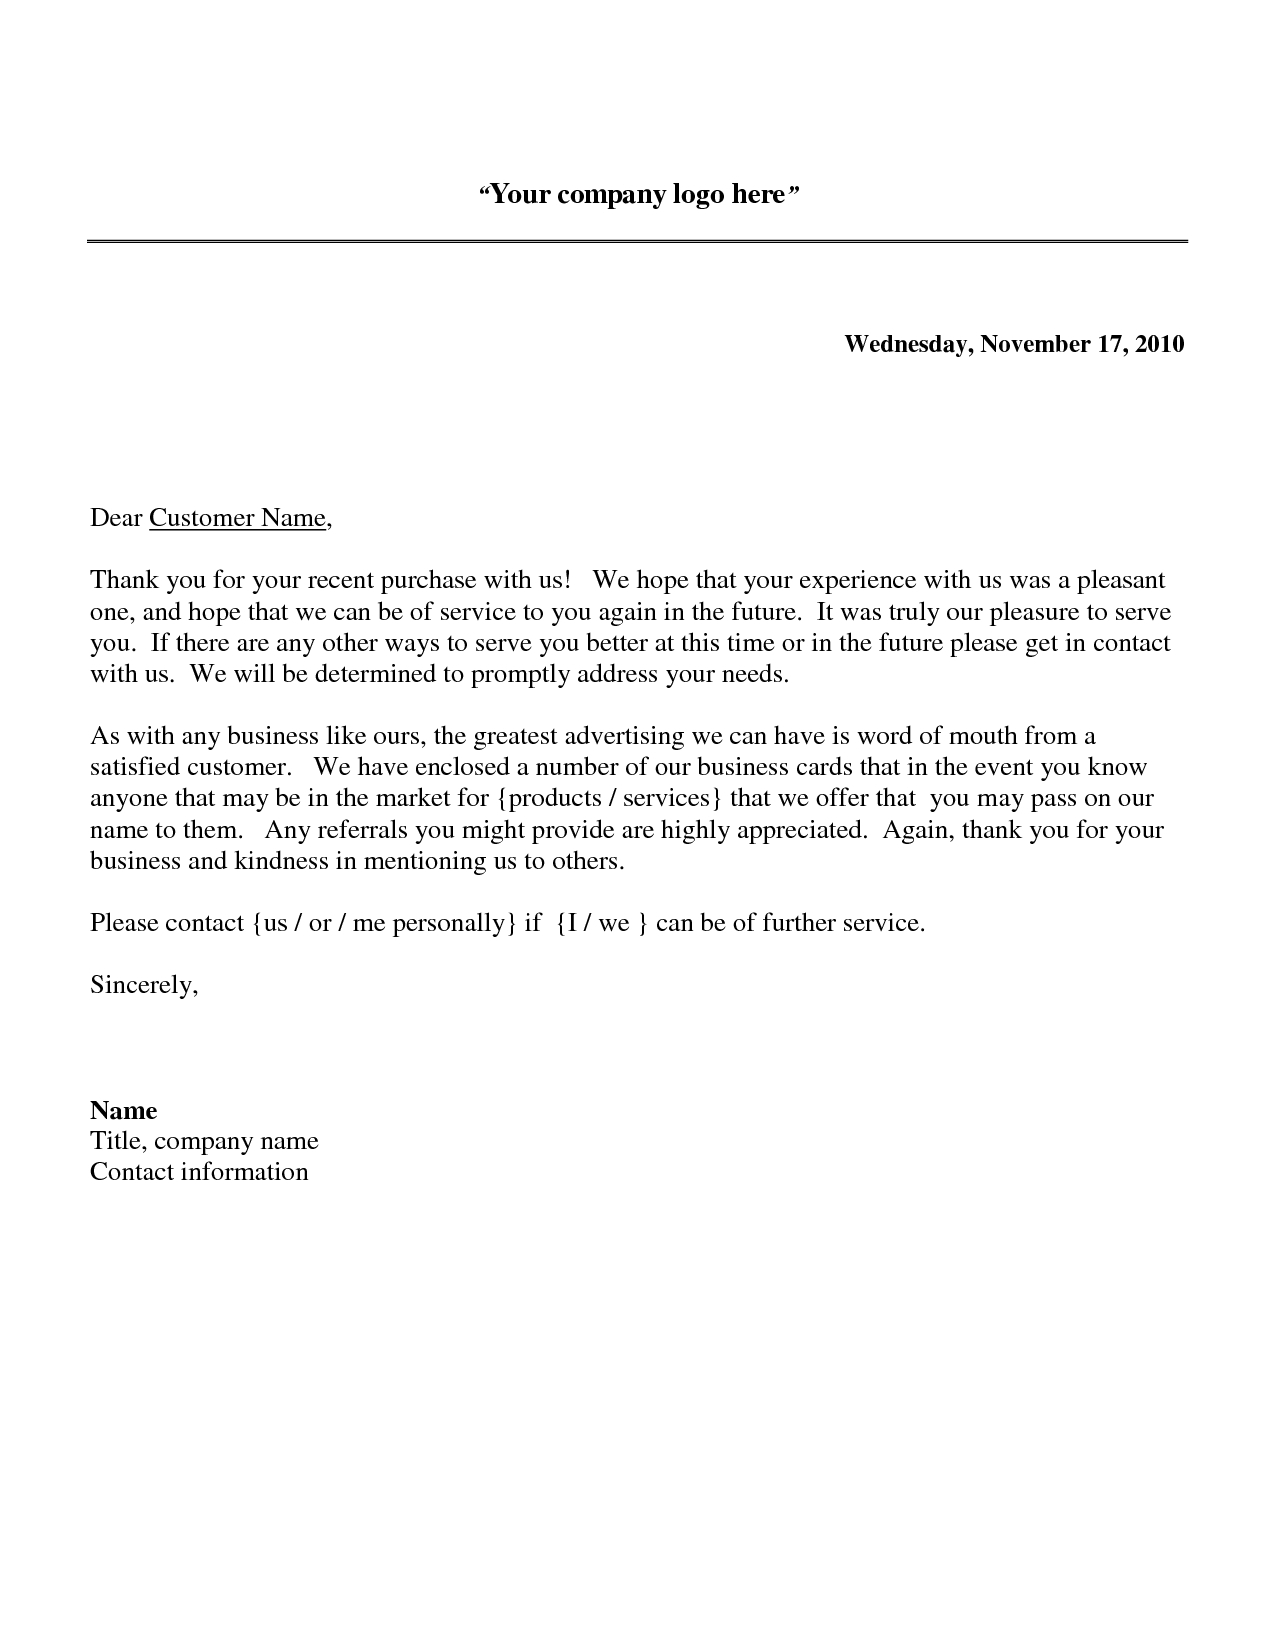 Thank You Letter Business Template - Business Letter to Customer Acurnamedia